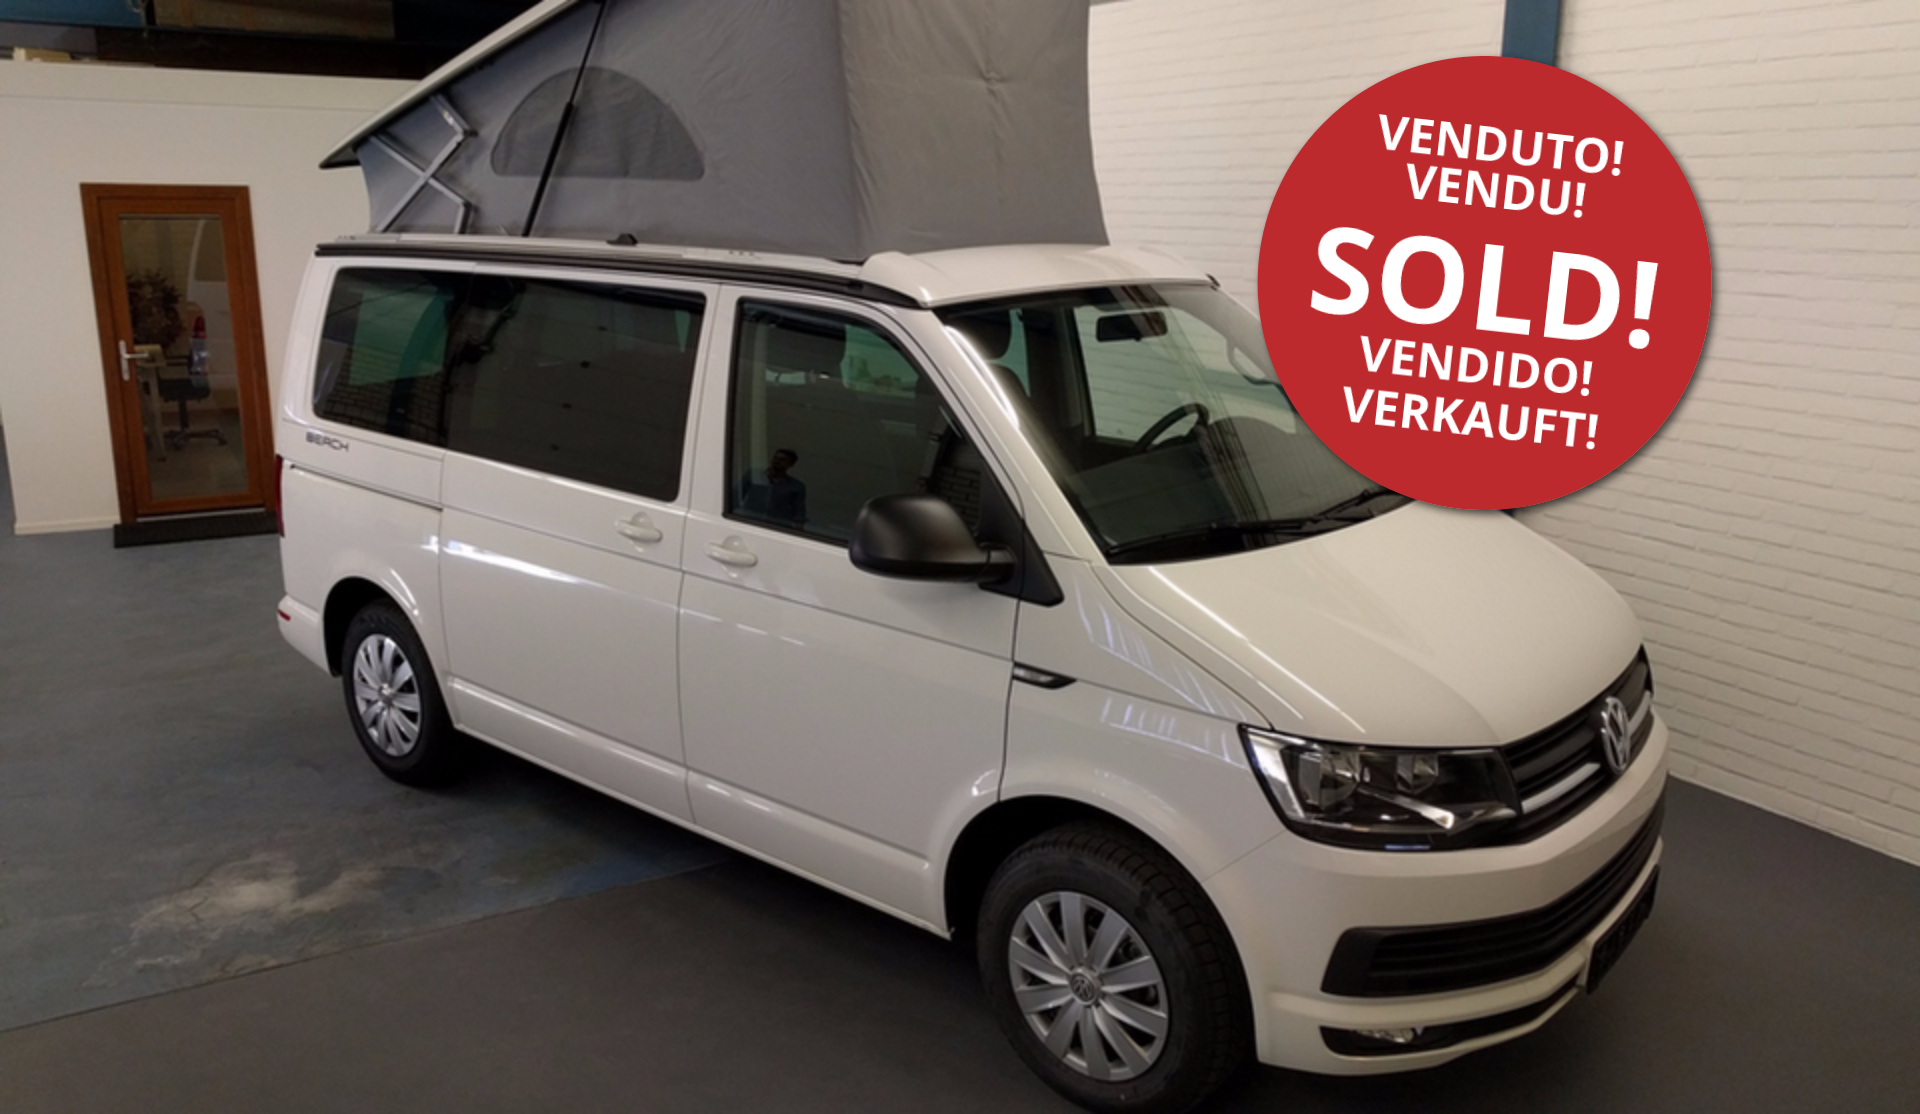 Now For Sale - Volkswagen California Beach VW T6 2 0 TDI 150HP